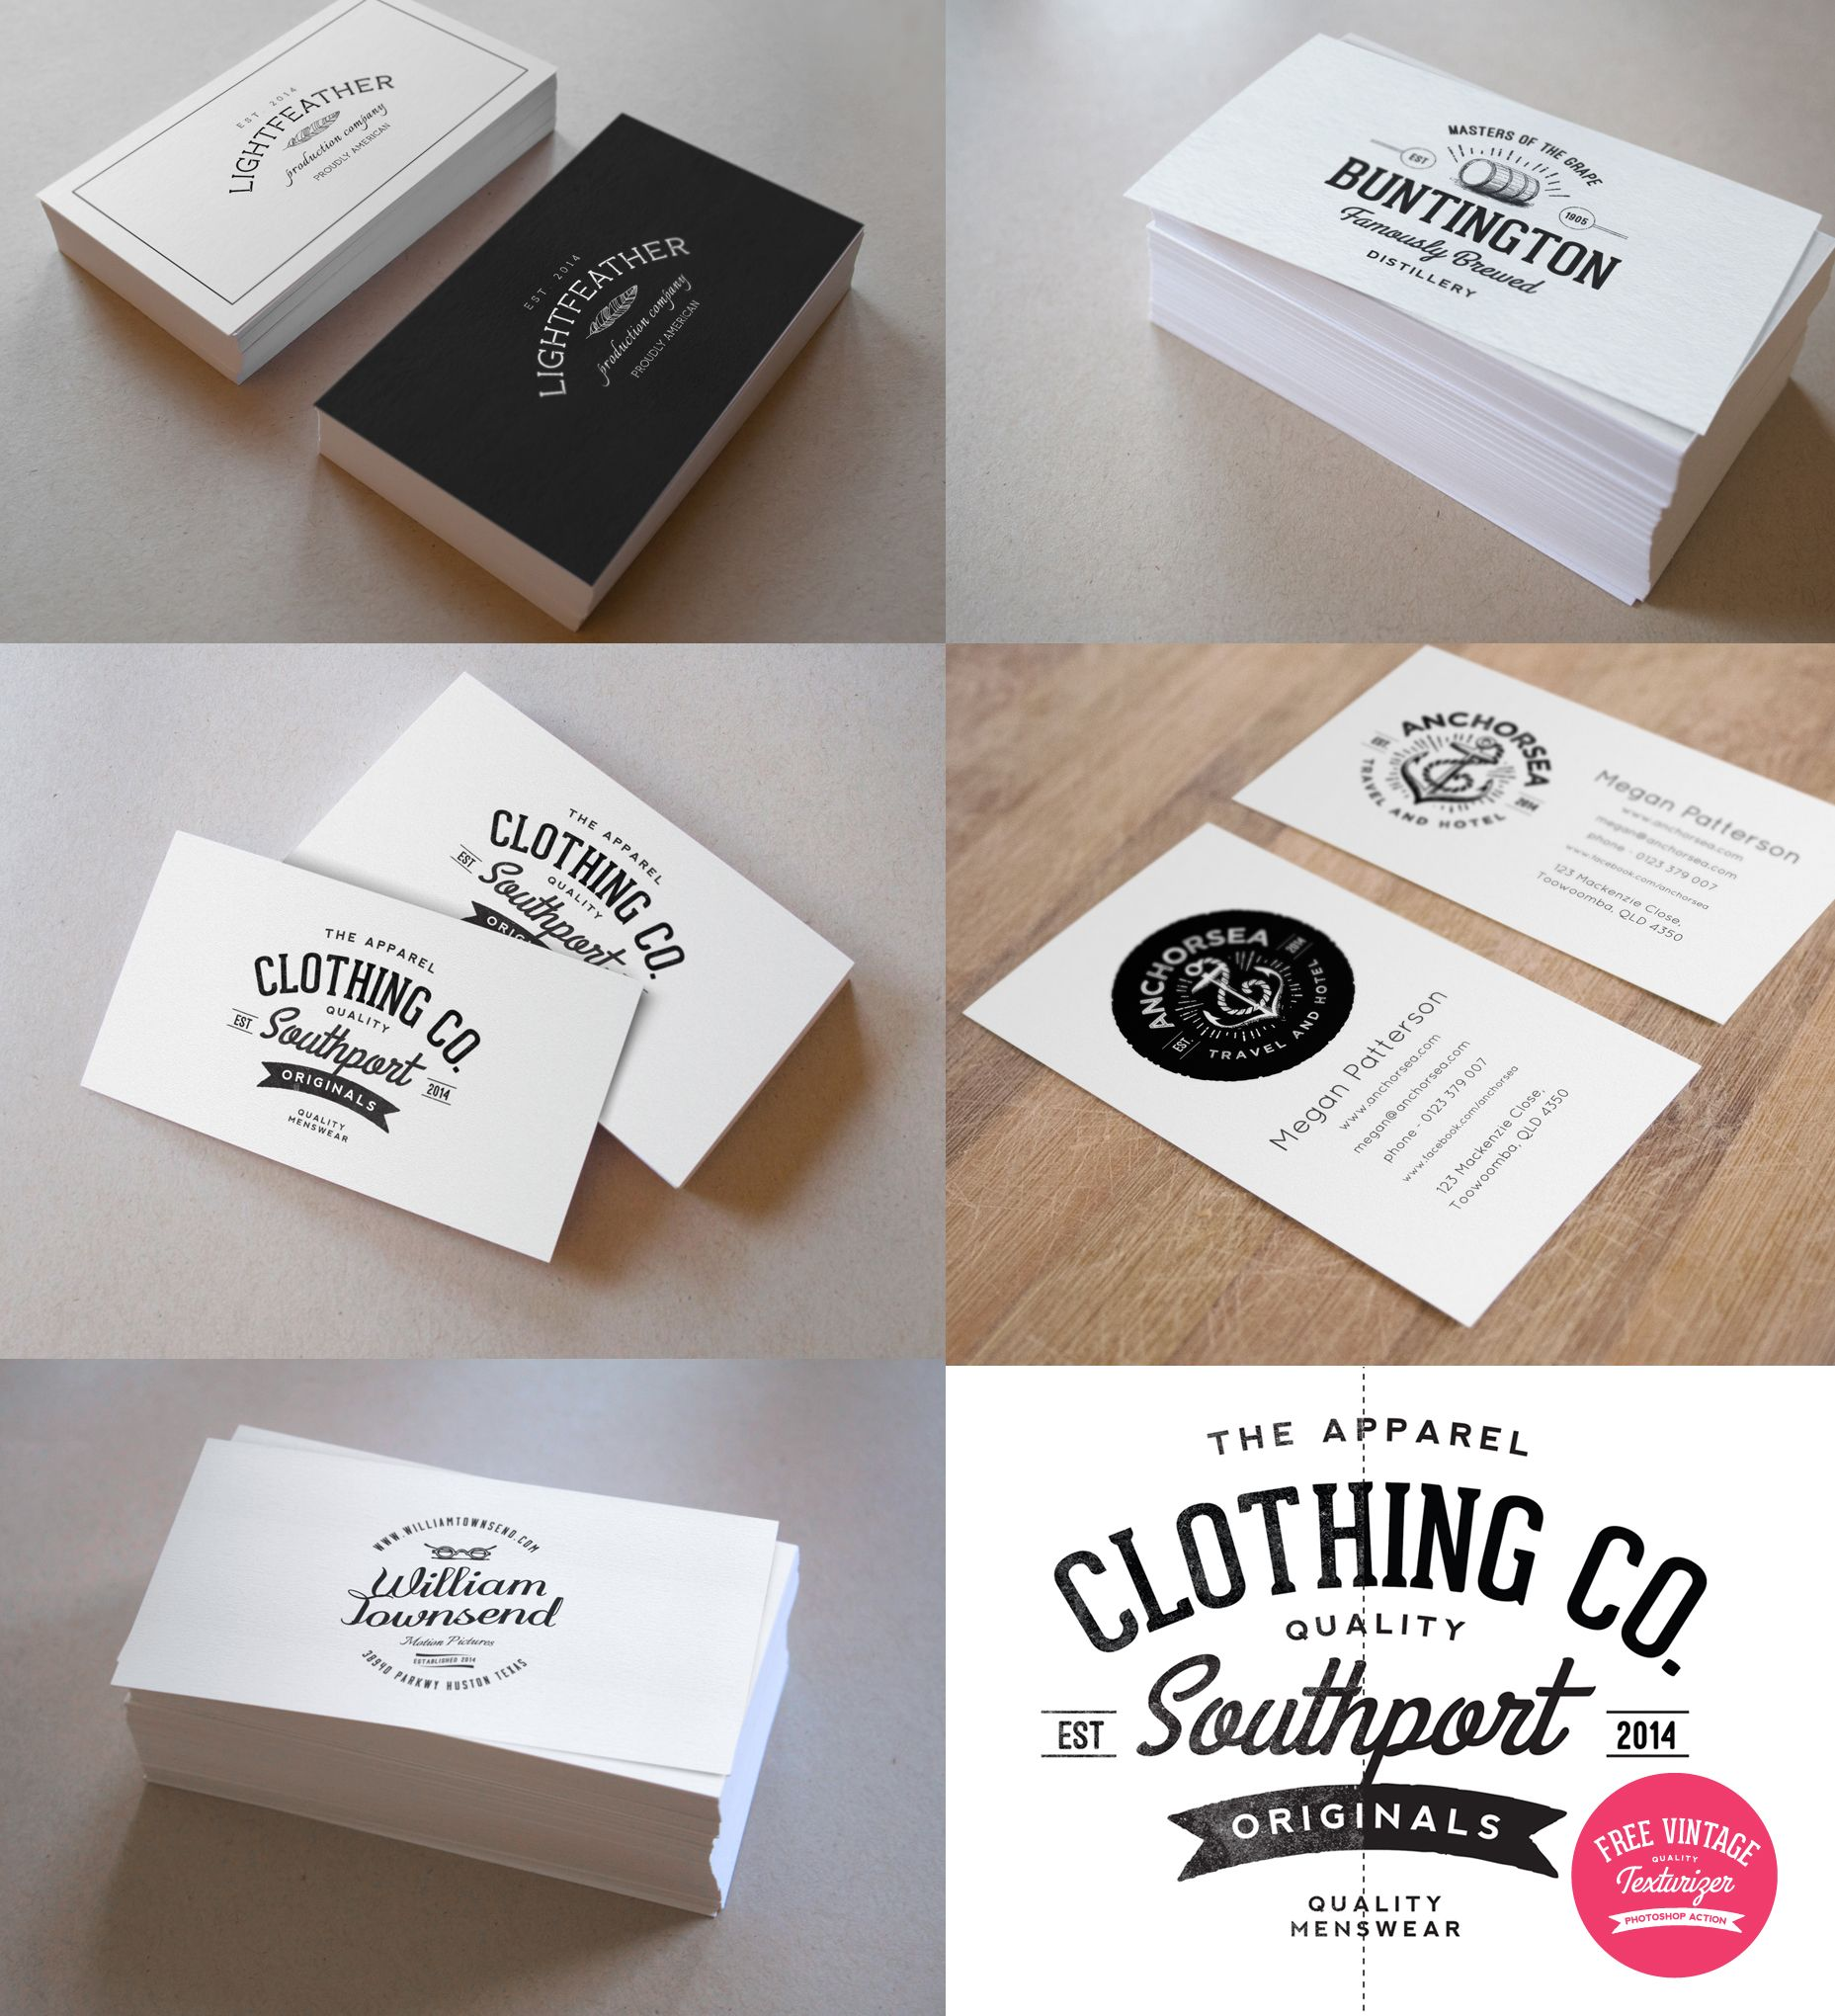 100 10 business card mockup vintage logos by nicky laatz 100 10 business card mockup vintage logos by nicky laatz on reheart Images